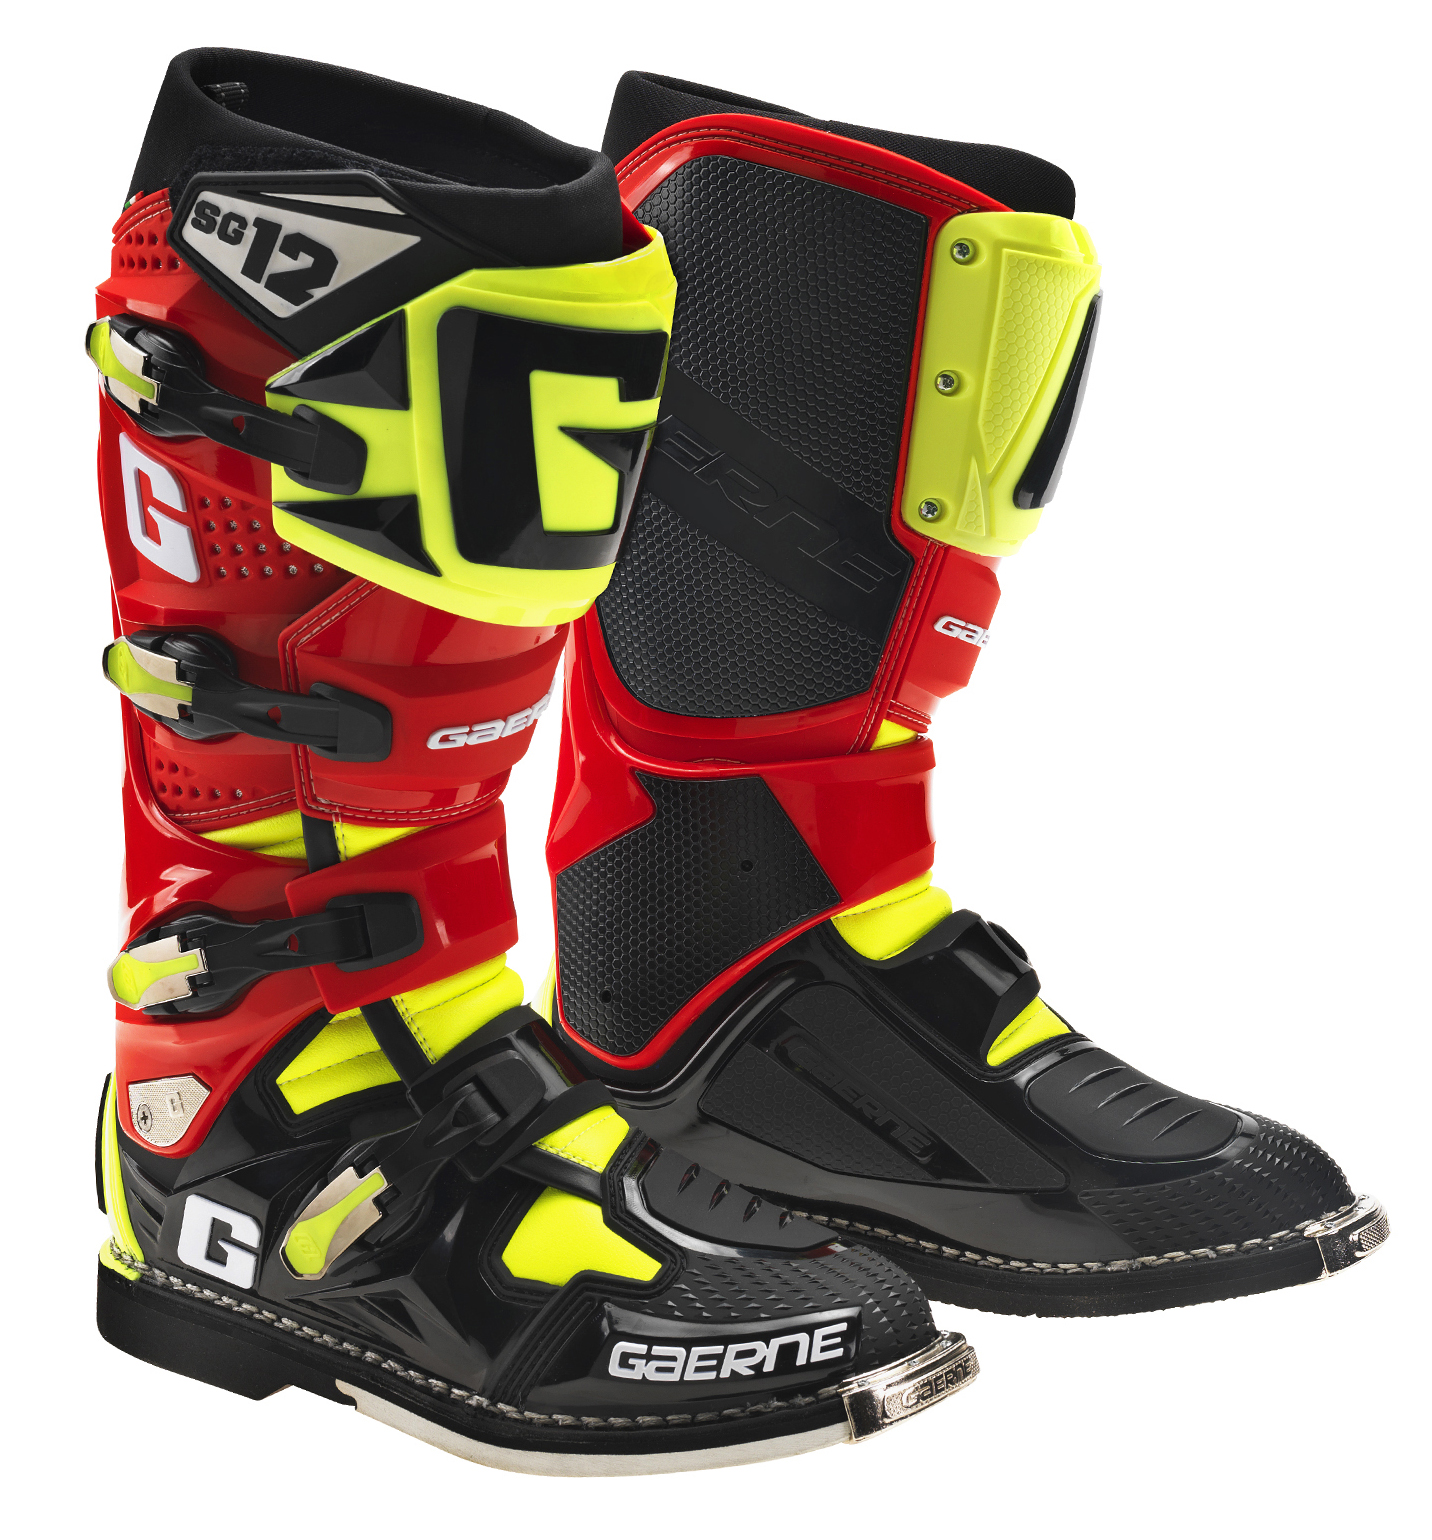 Gaerne Boots Sg12 >> GAERNE SG12 BOOT BLACK / RED / YELLOW - Motocross ...